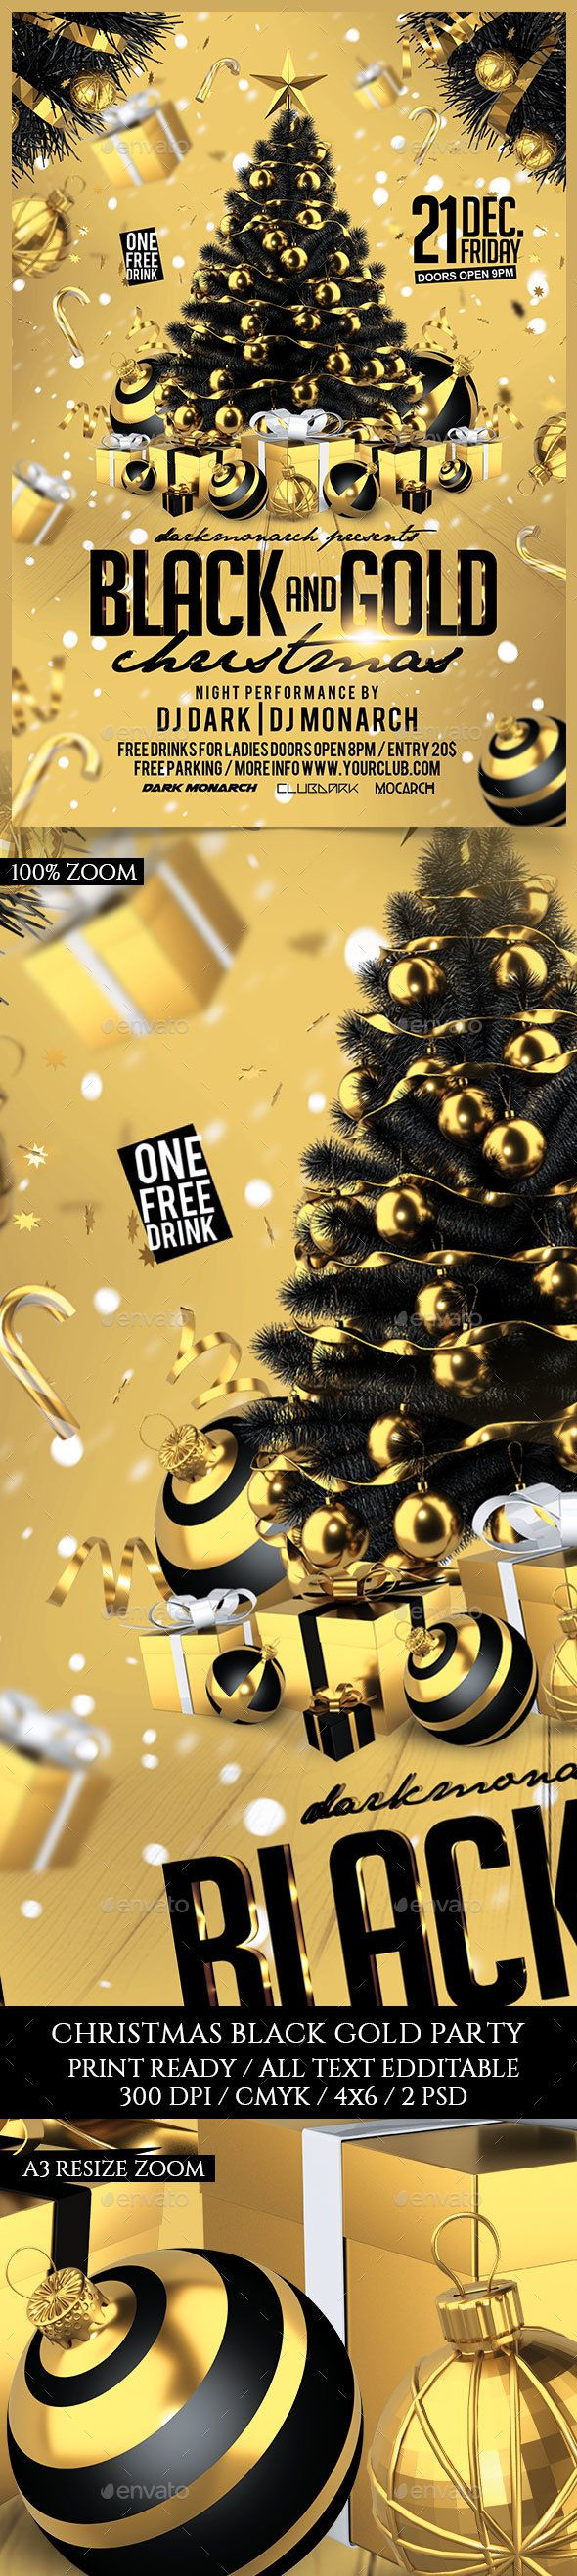 Black and Gold Christmas Party Flyer Template PSD